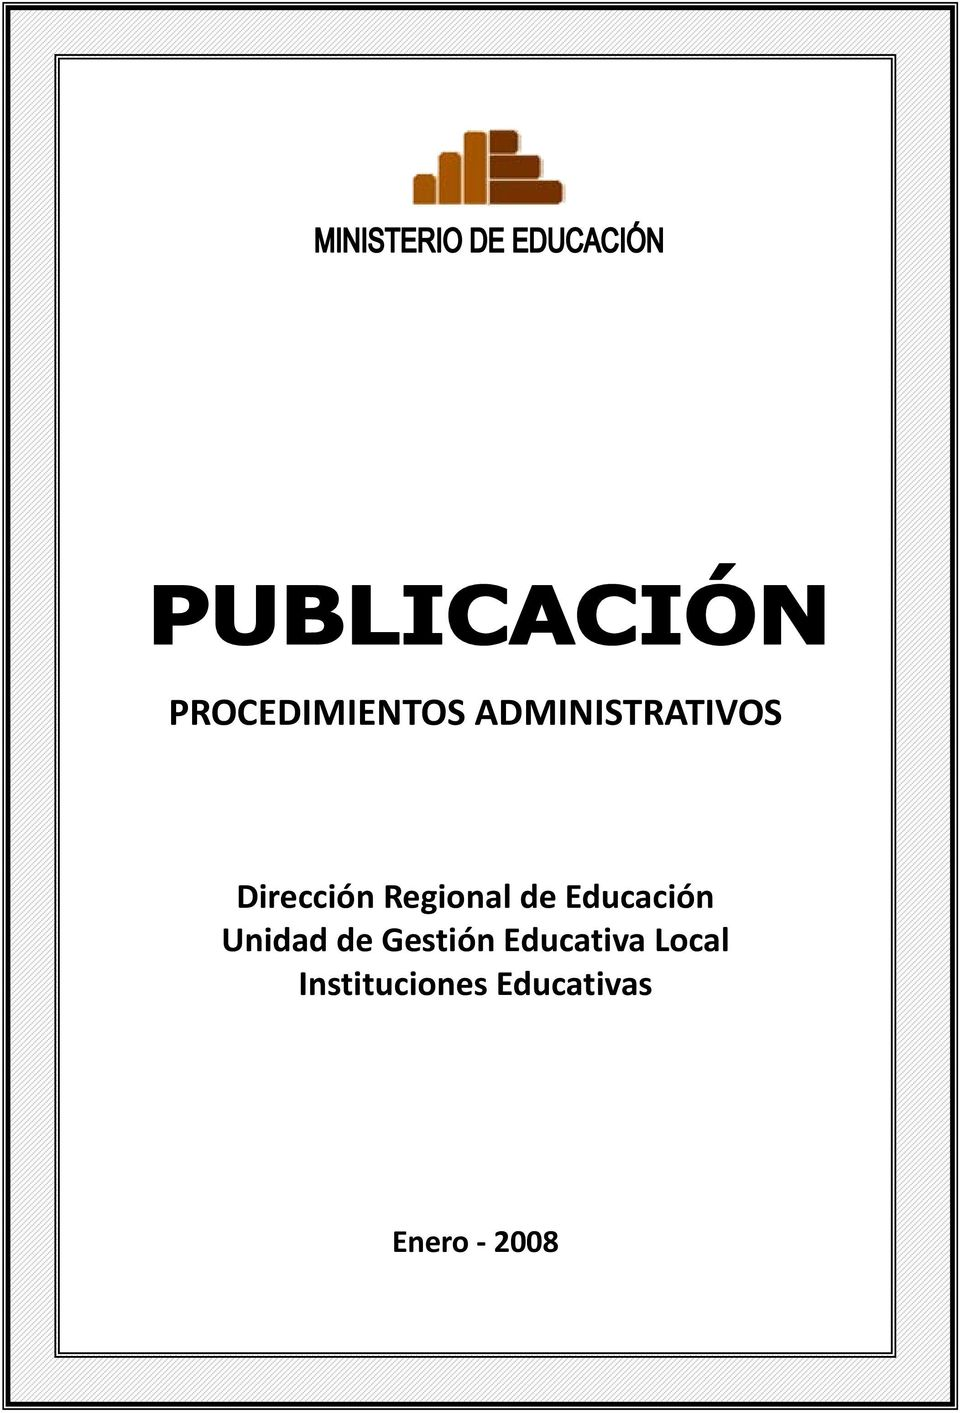 de Gestión Educativa Local